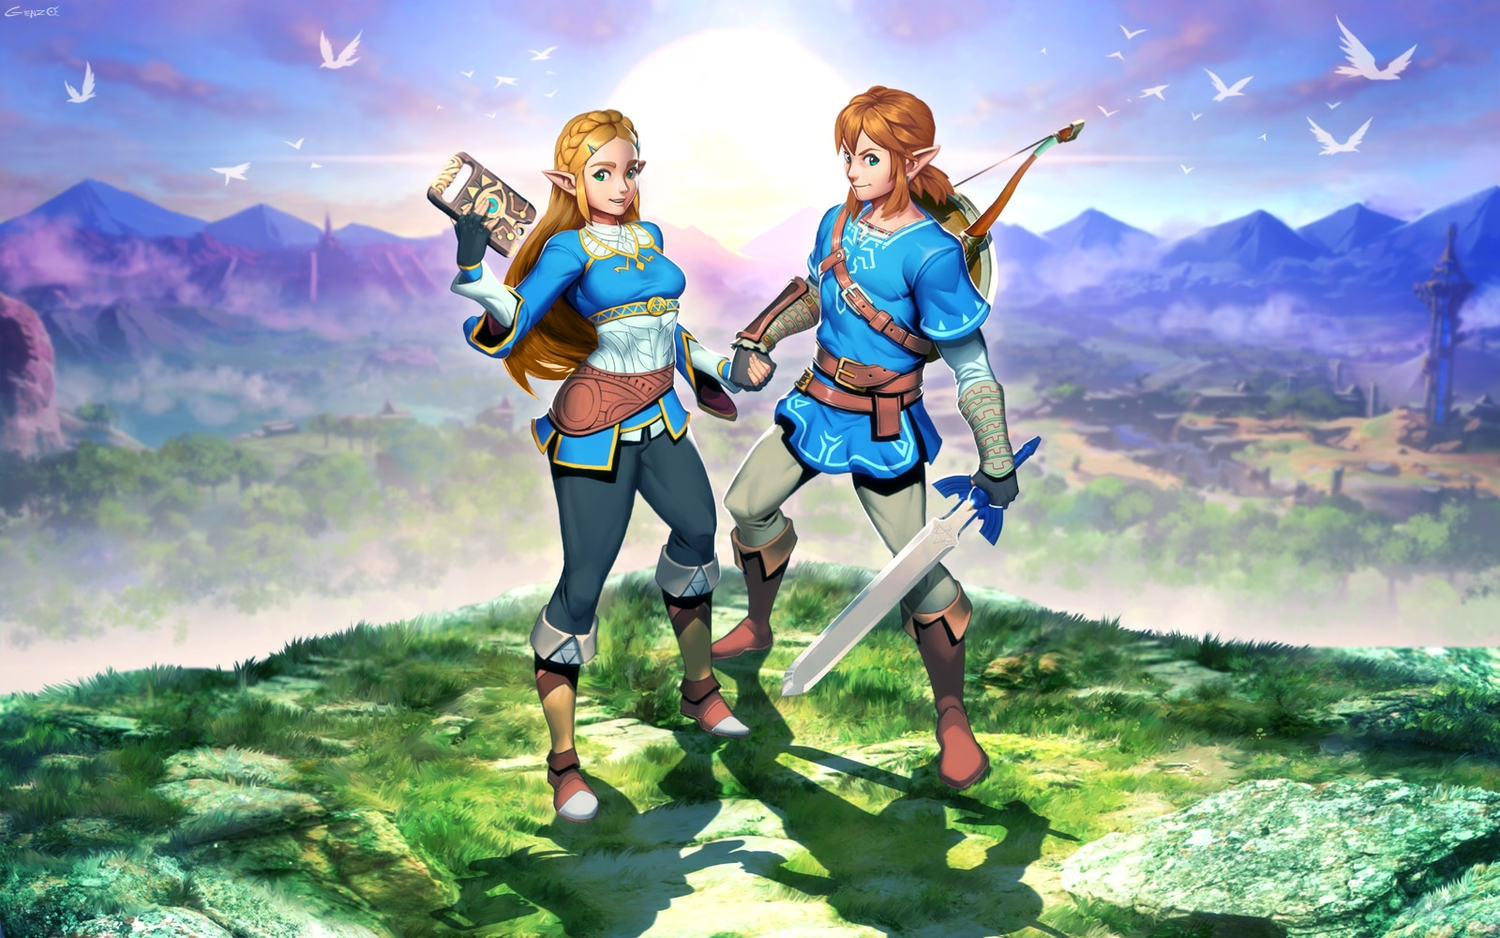 animal bird blonde_hair blue_eyes boots bow_(weapon) braids brown_hair building clouds computer genzoman gloves grass link_(zelda) long_hair male pointed_ears ponytail princess_zelda scenic signed sky sword the_legend_of_zelda weapon